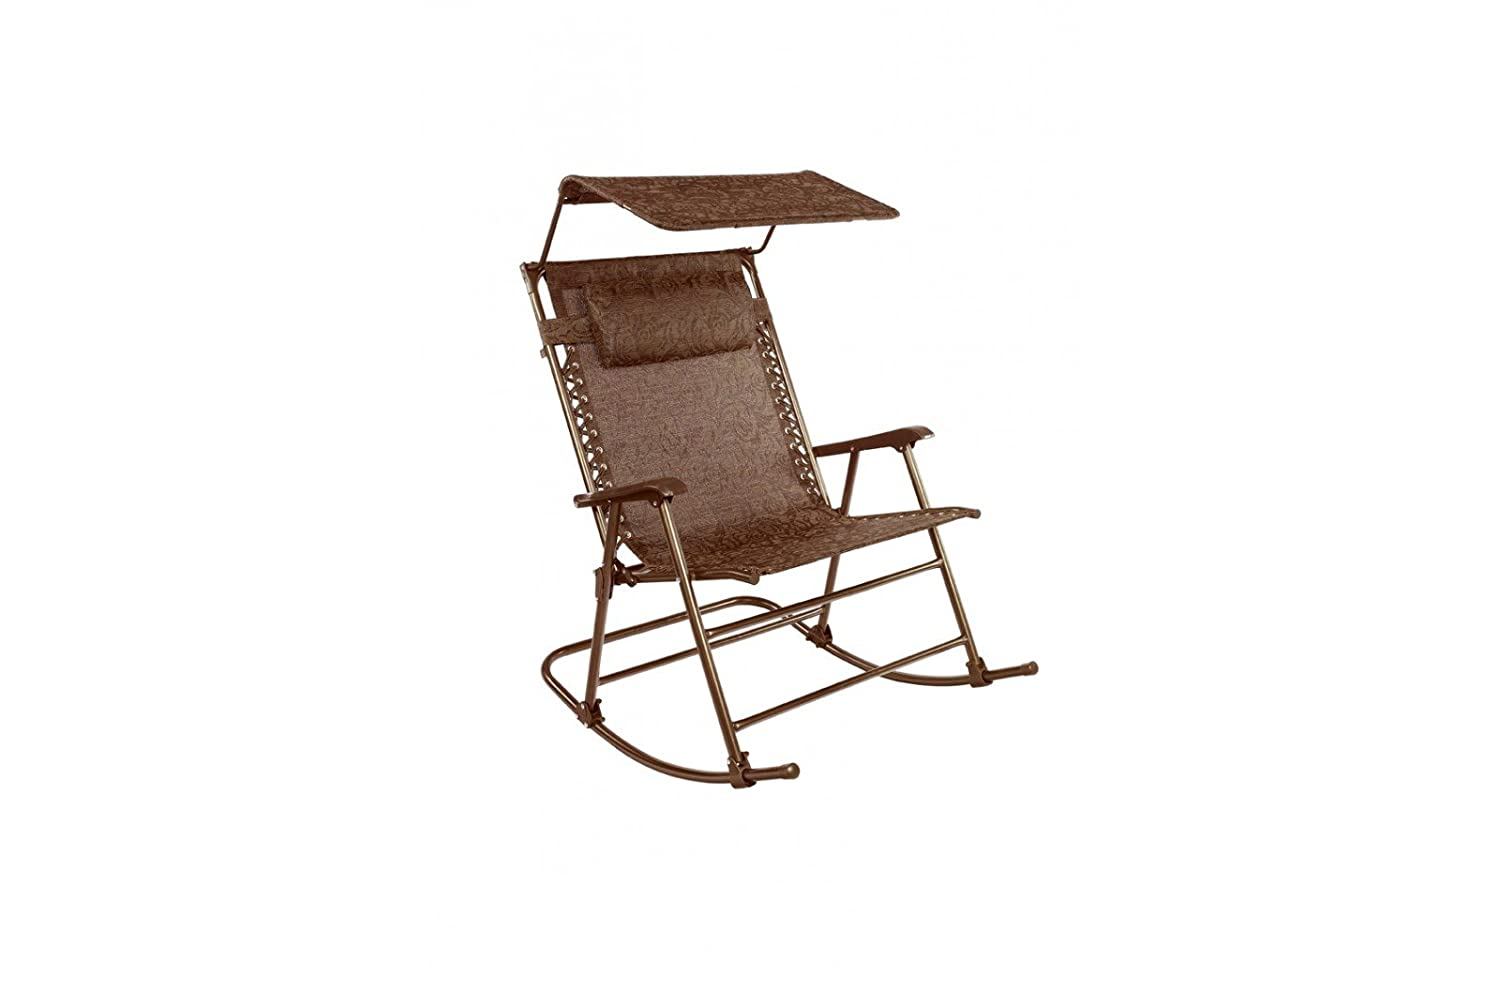 Excellent Amazon Com Patio Bliss Deluxe Rocking Chair With Canopy Squirreltailoven Fun Painted Chair Ideas Images Squirreltailovenorg